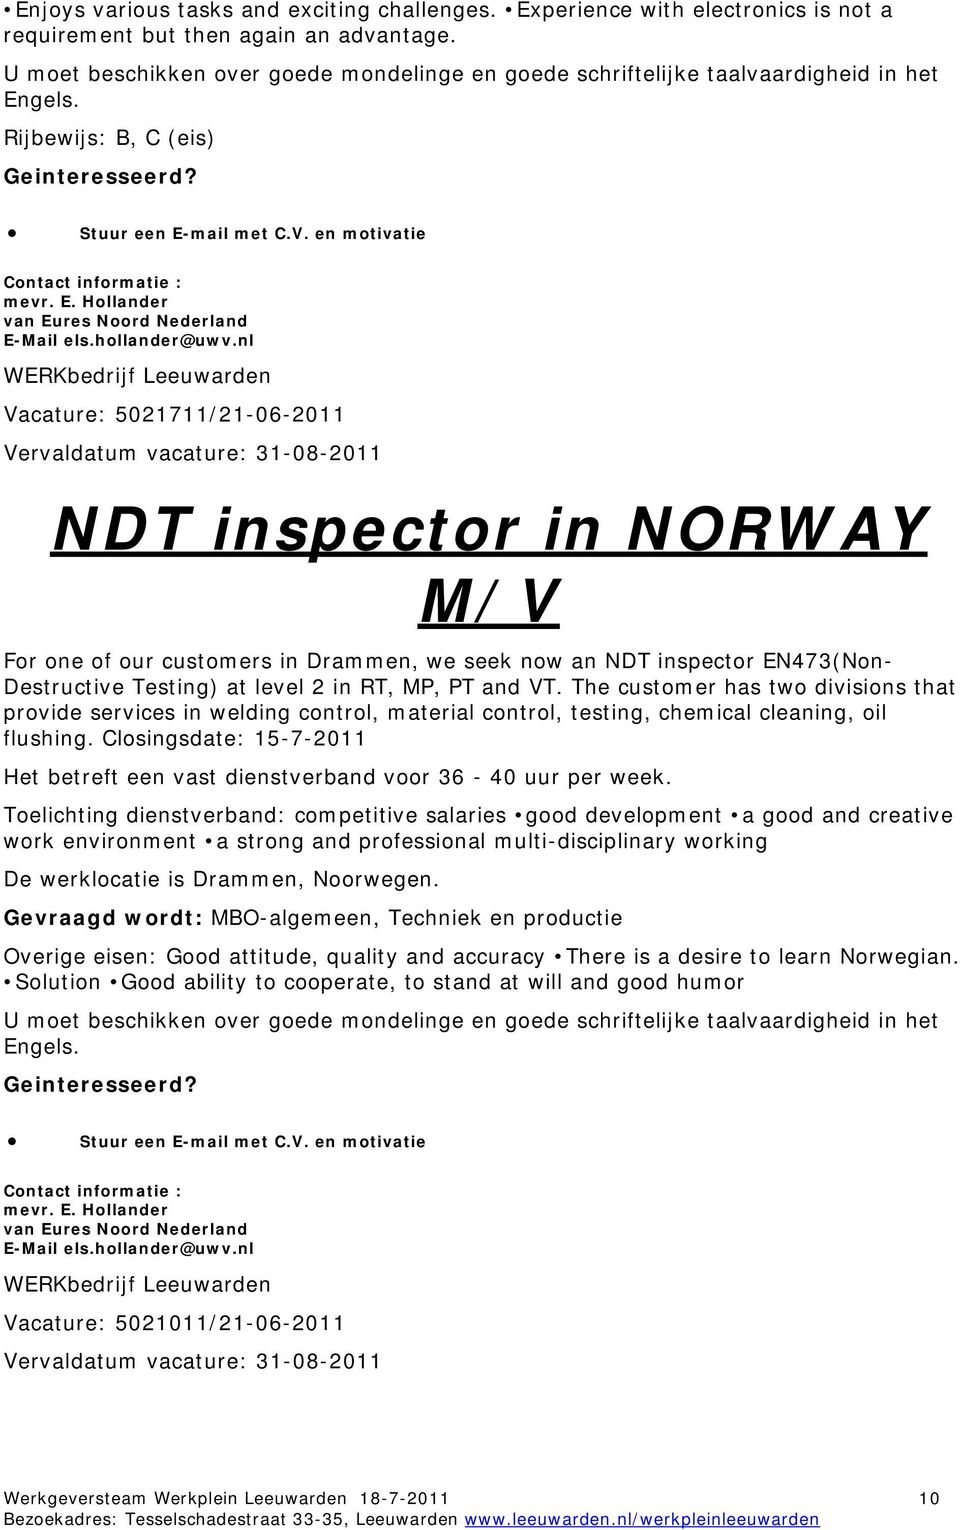 nl Vacature: 5021711/21-06-2011 Vervaldatum vacature: 31-08-2011 NDT inspector in NORWAY M/V For one of our customers in Drammen, we seek now an NDT inspector EN473(Non- Destructive Testing) at level